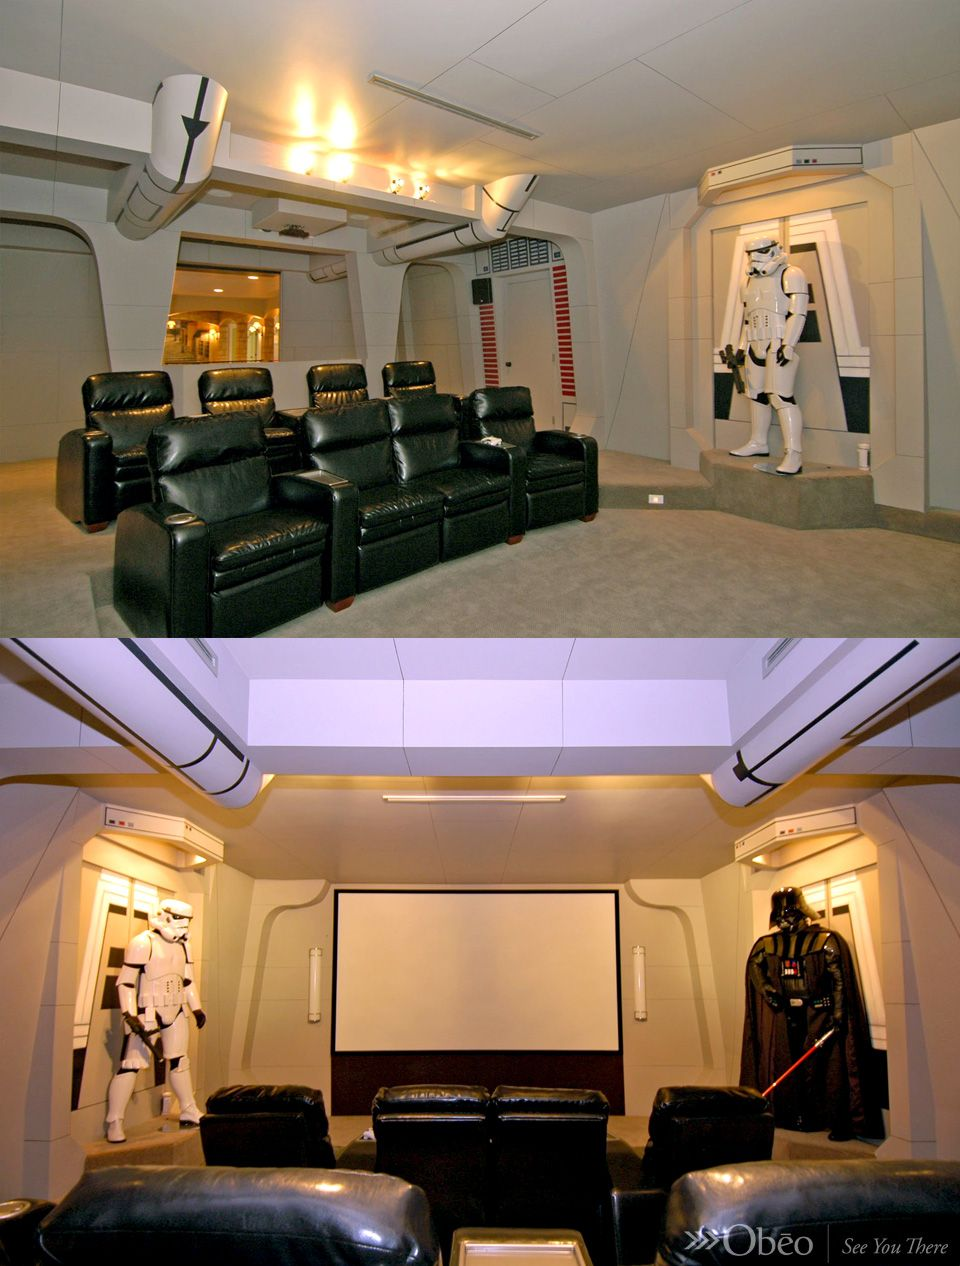 Star Wars Home Theater Room I Wonder If They Have Have The Whole